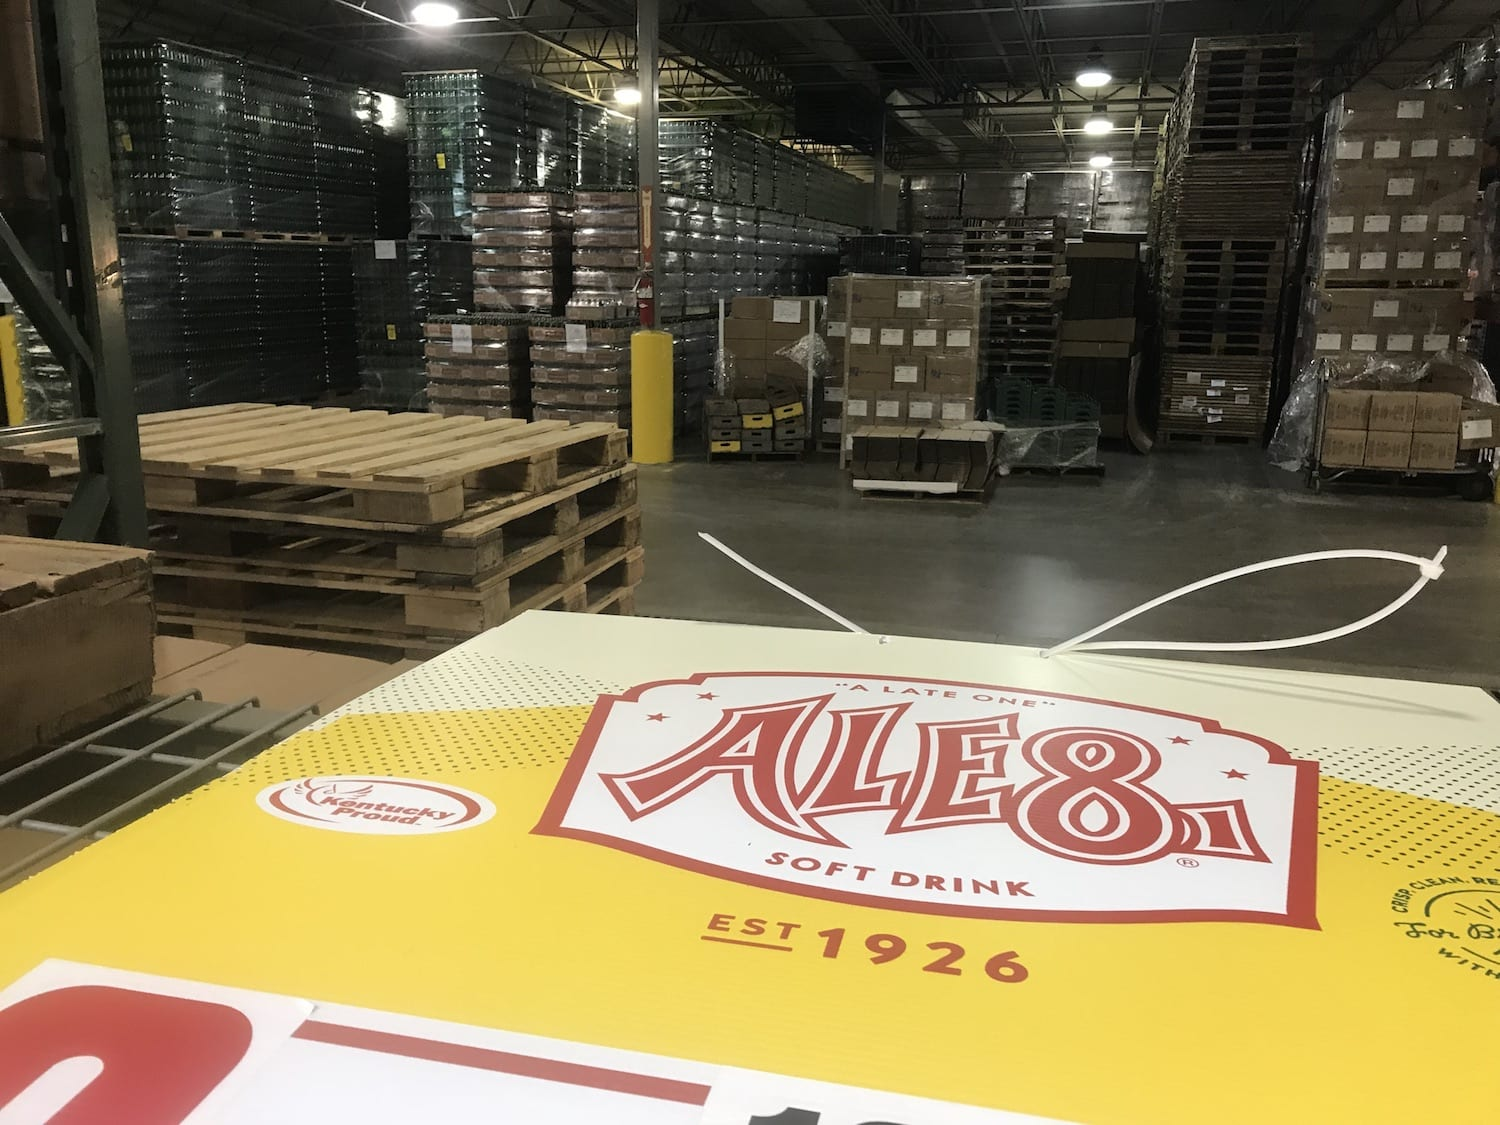 Ale-8-One Factory tour